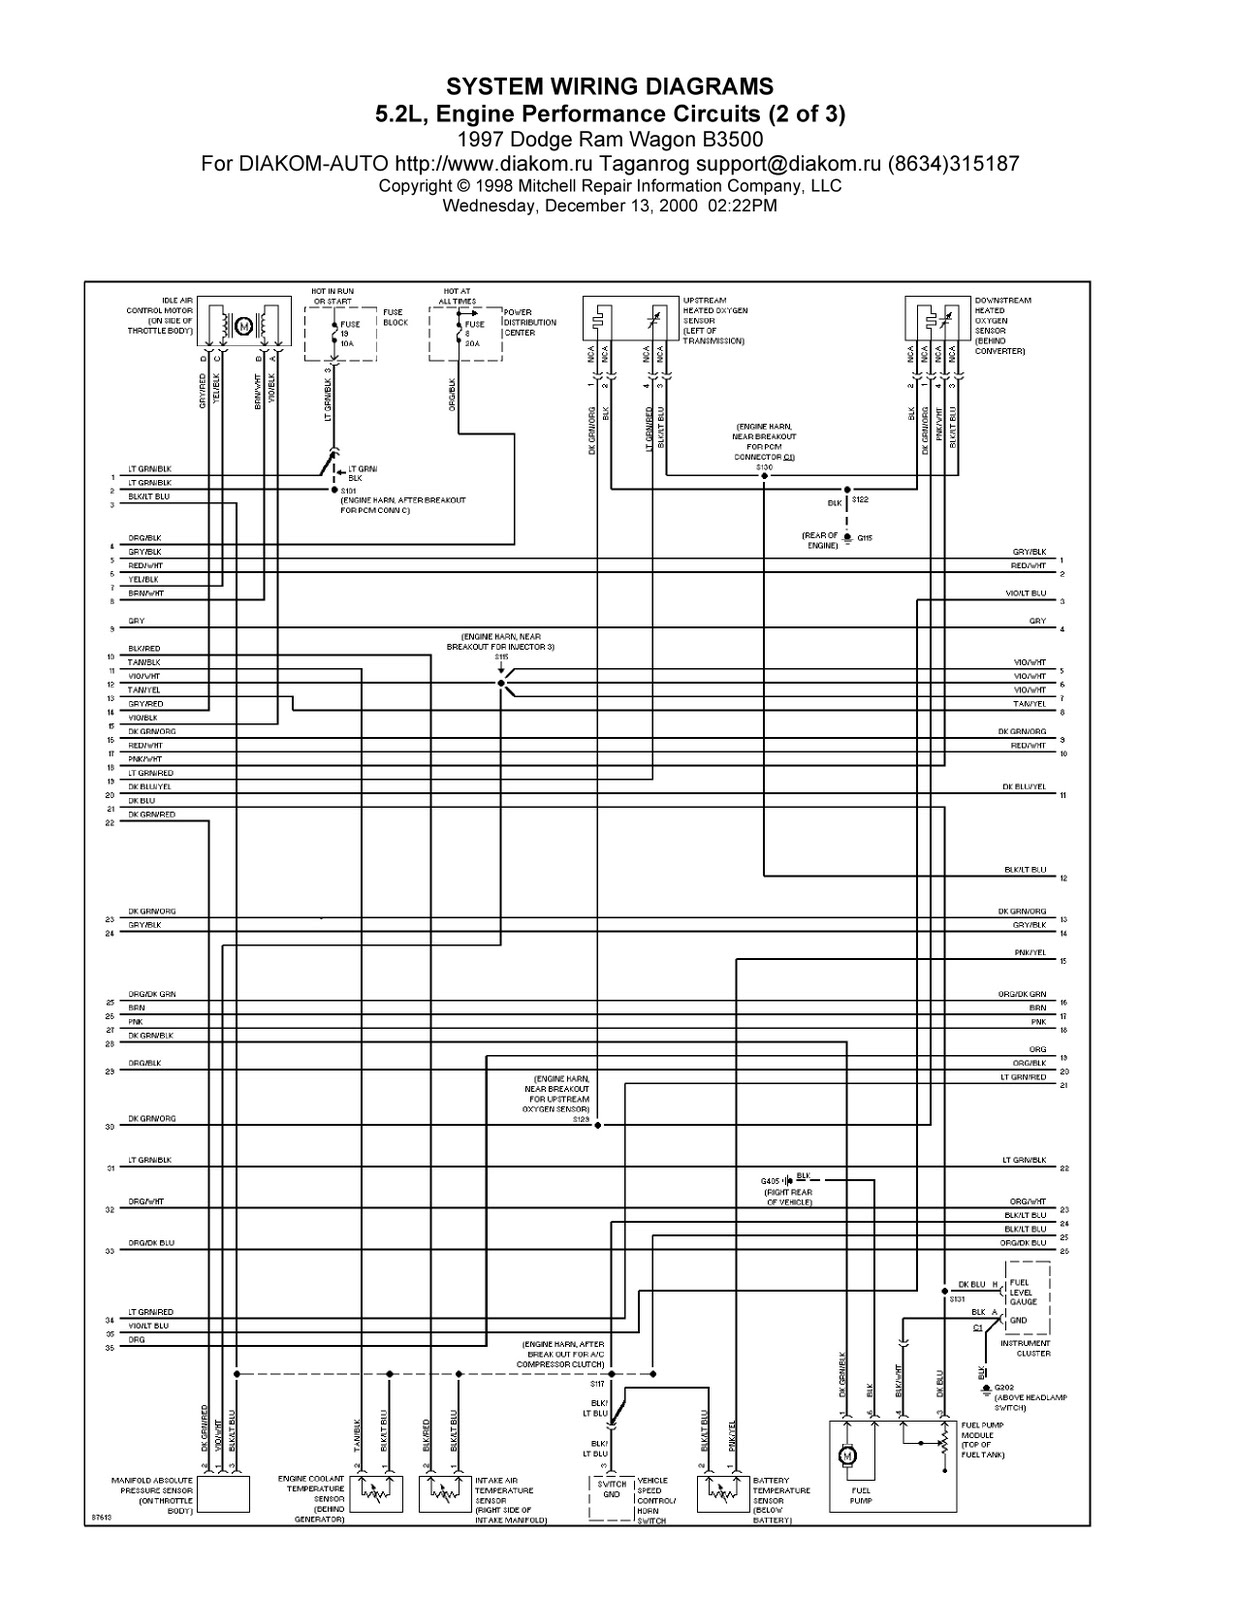 2002 Dodge Dakota Pcm Wiring Diagram from 3.bp.blogspot.com